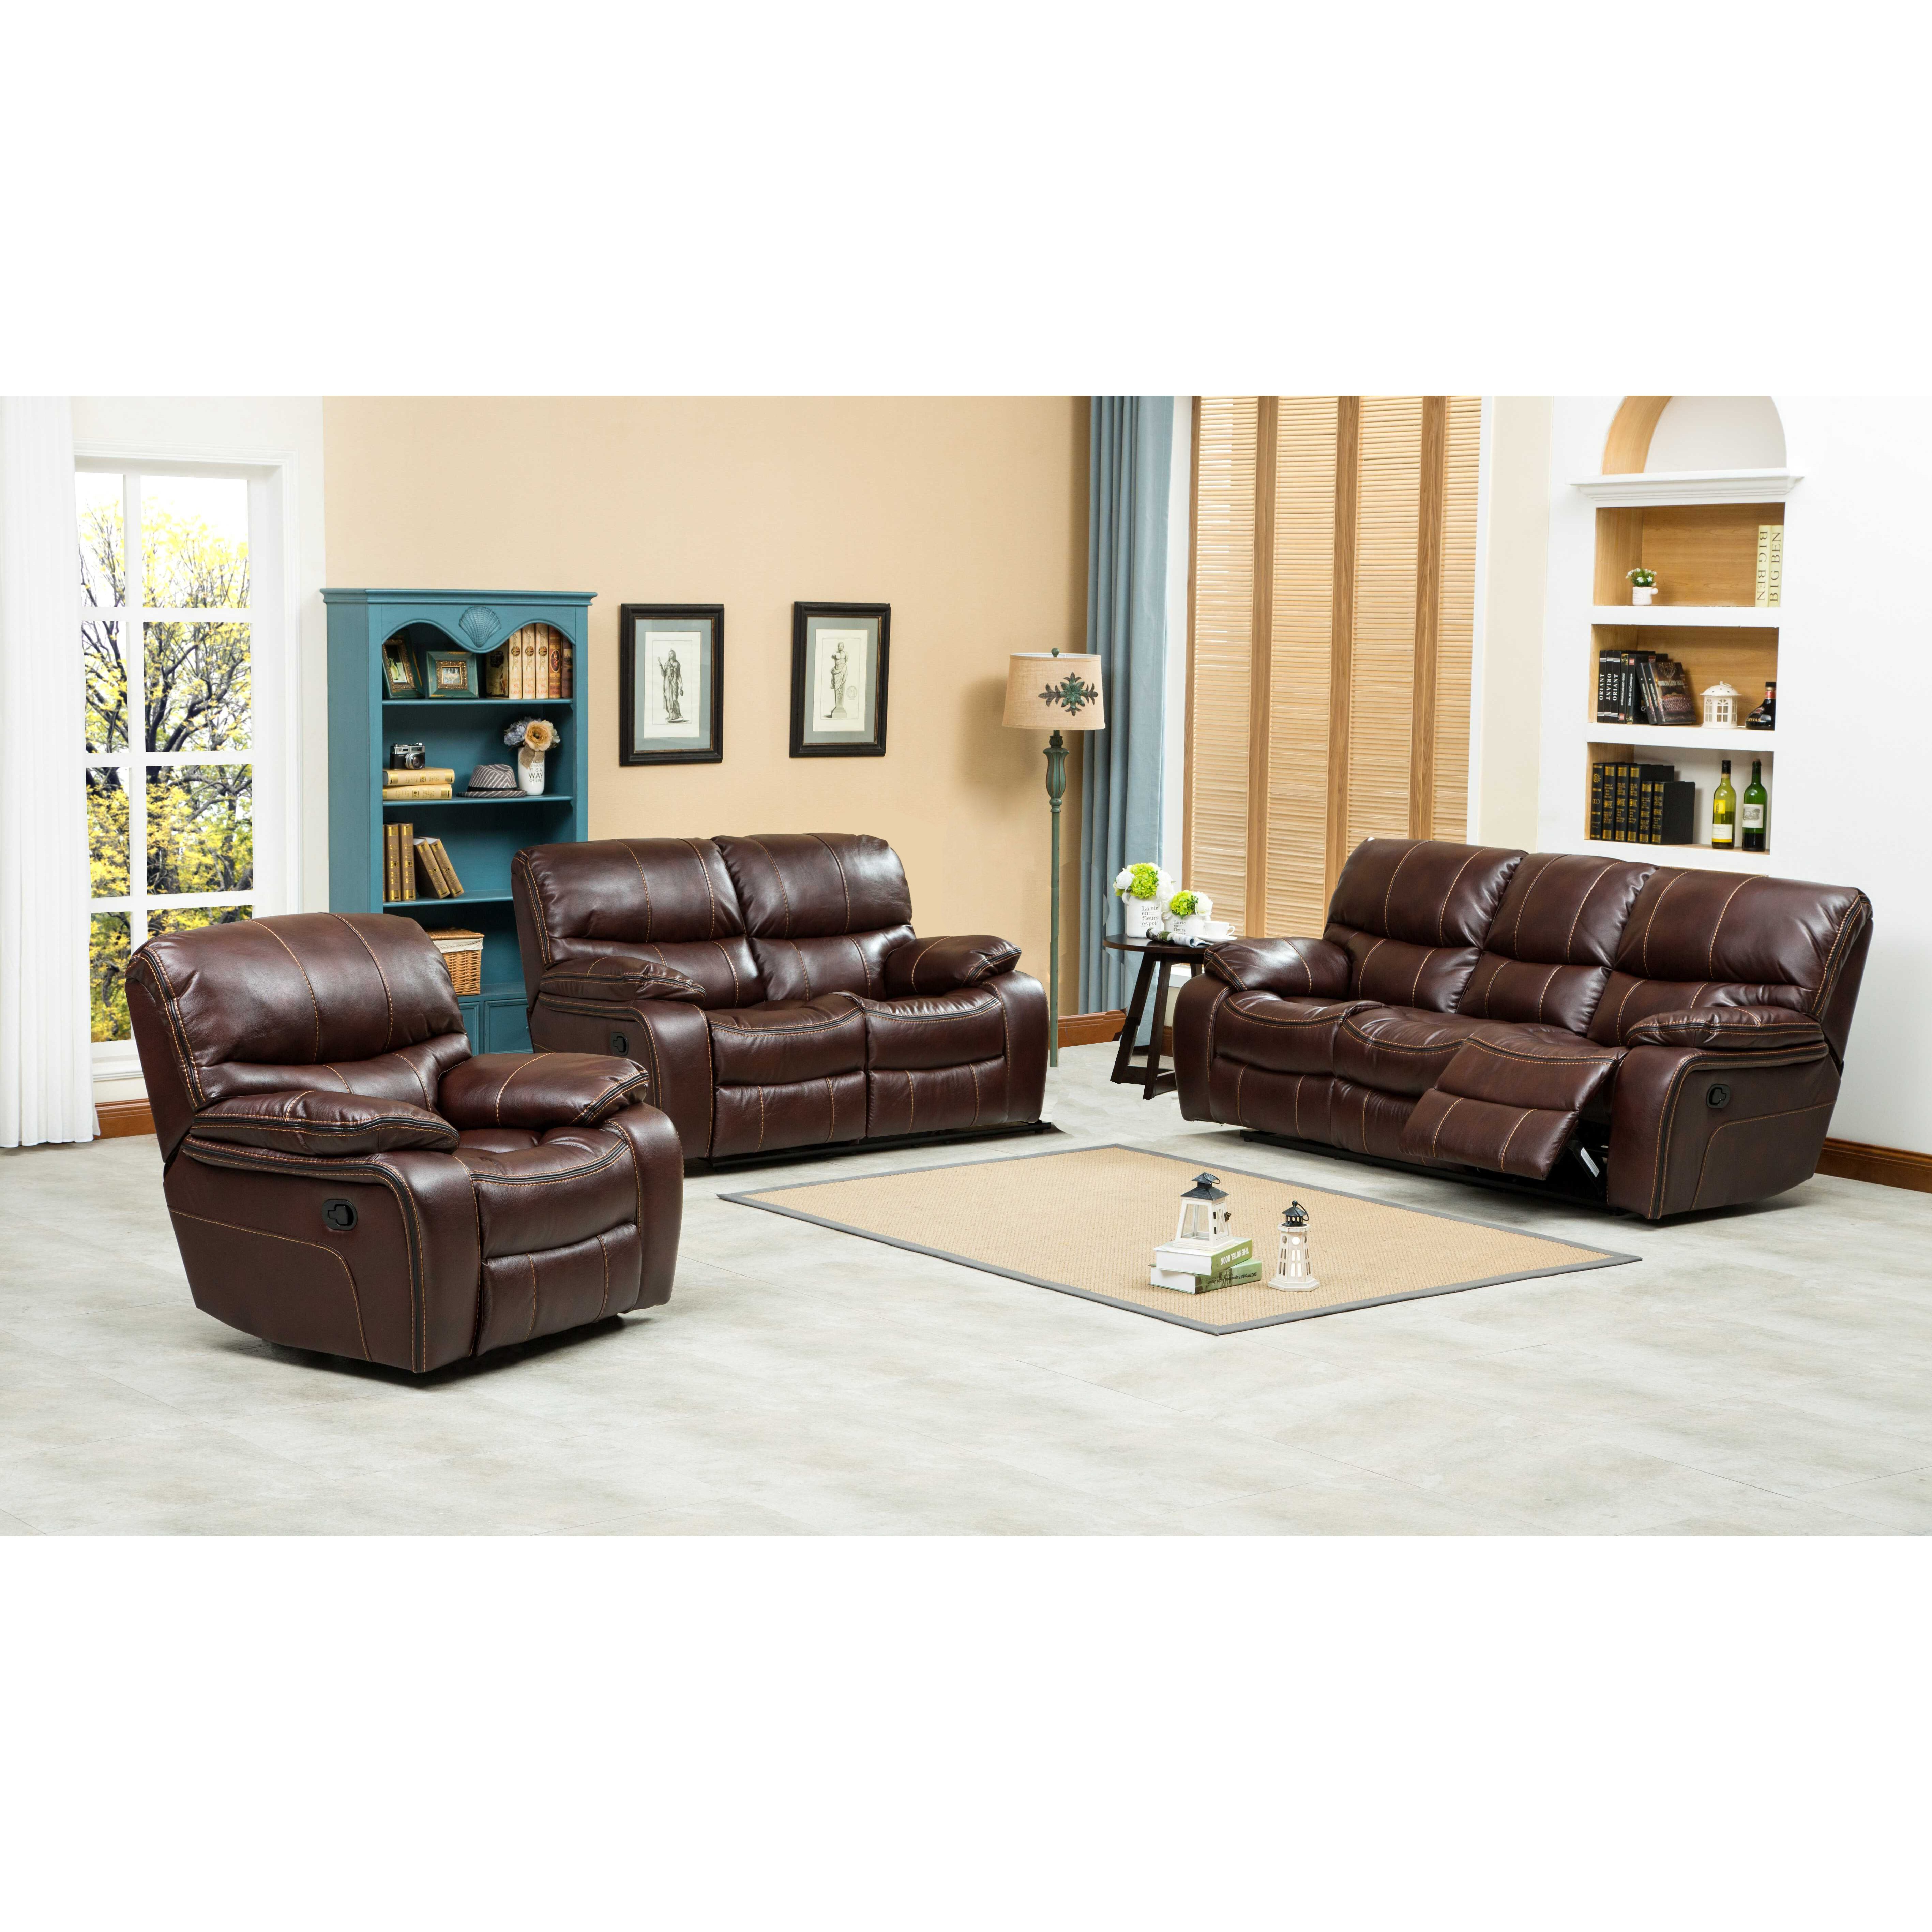 Roundhill furniture ewa 3 piece reclining leather living Reclining living room furniture